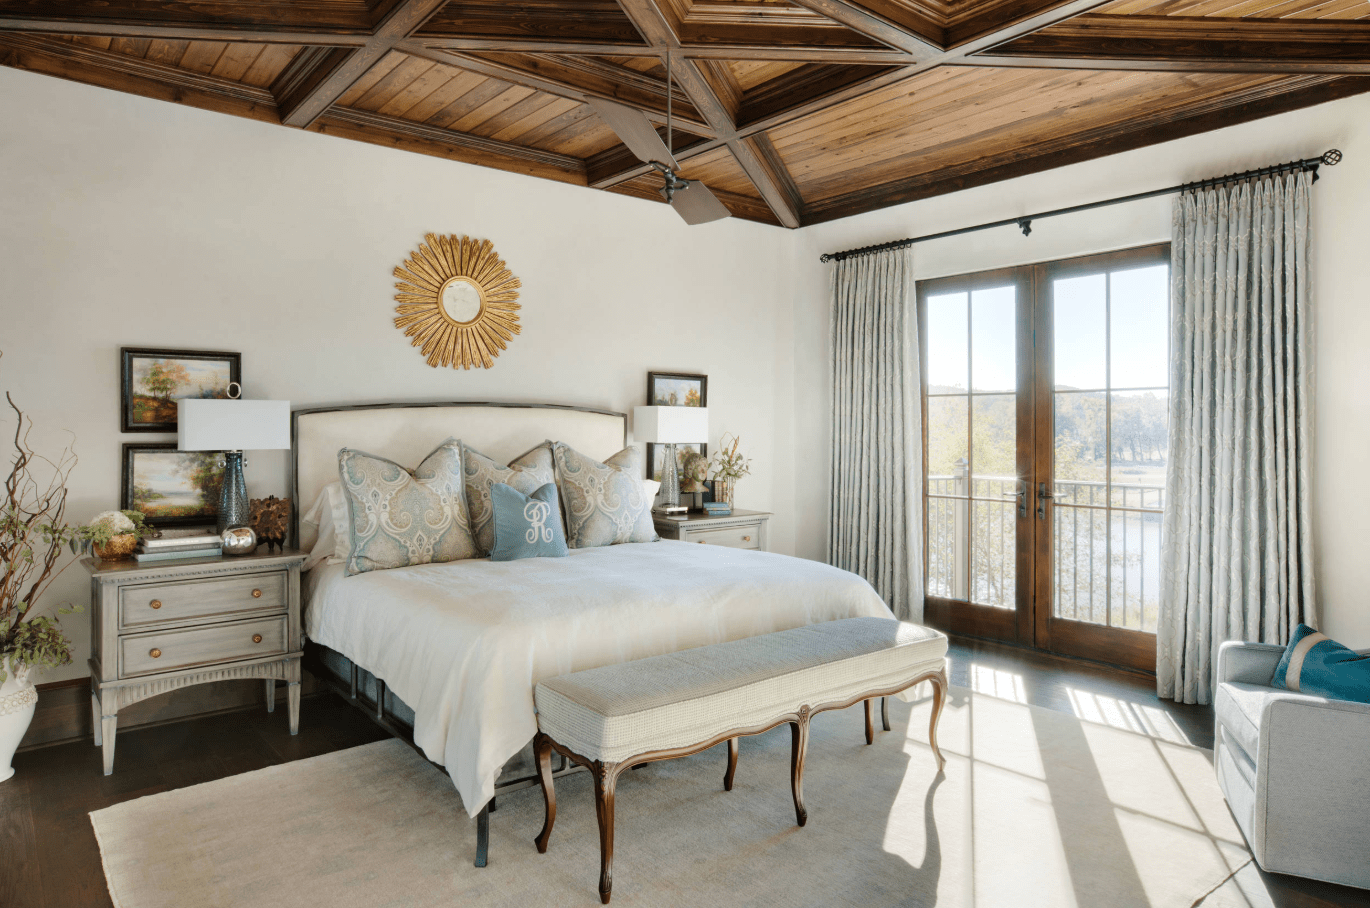 Cozy primary bedroom designed with a gold sunburst wall mirror and wooden coffered ceiling. It has glass doors that bring natural light in.